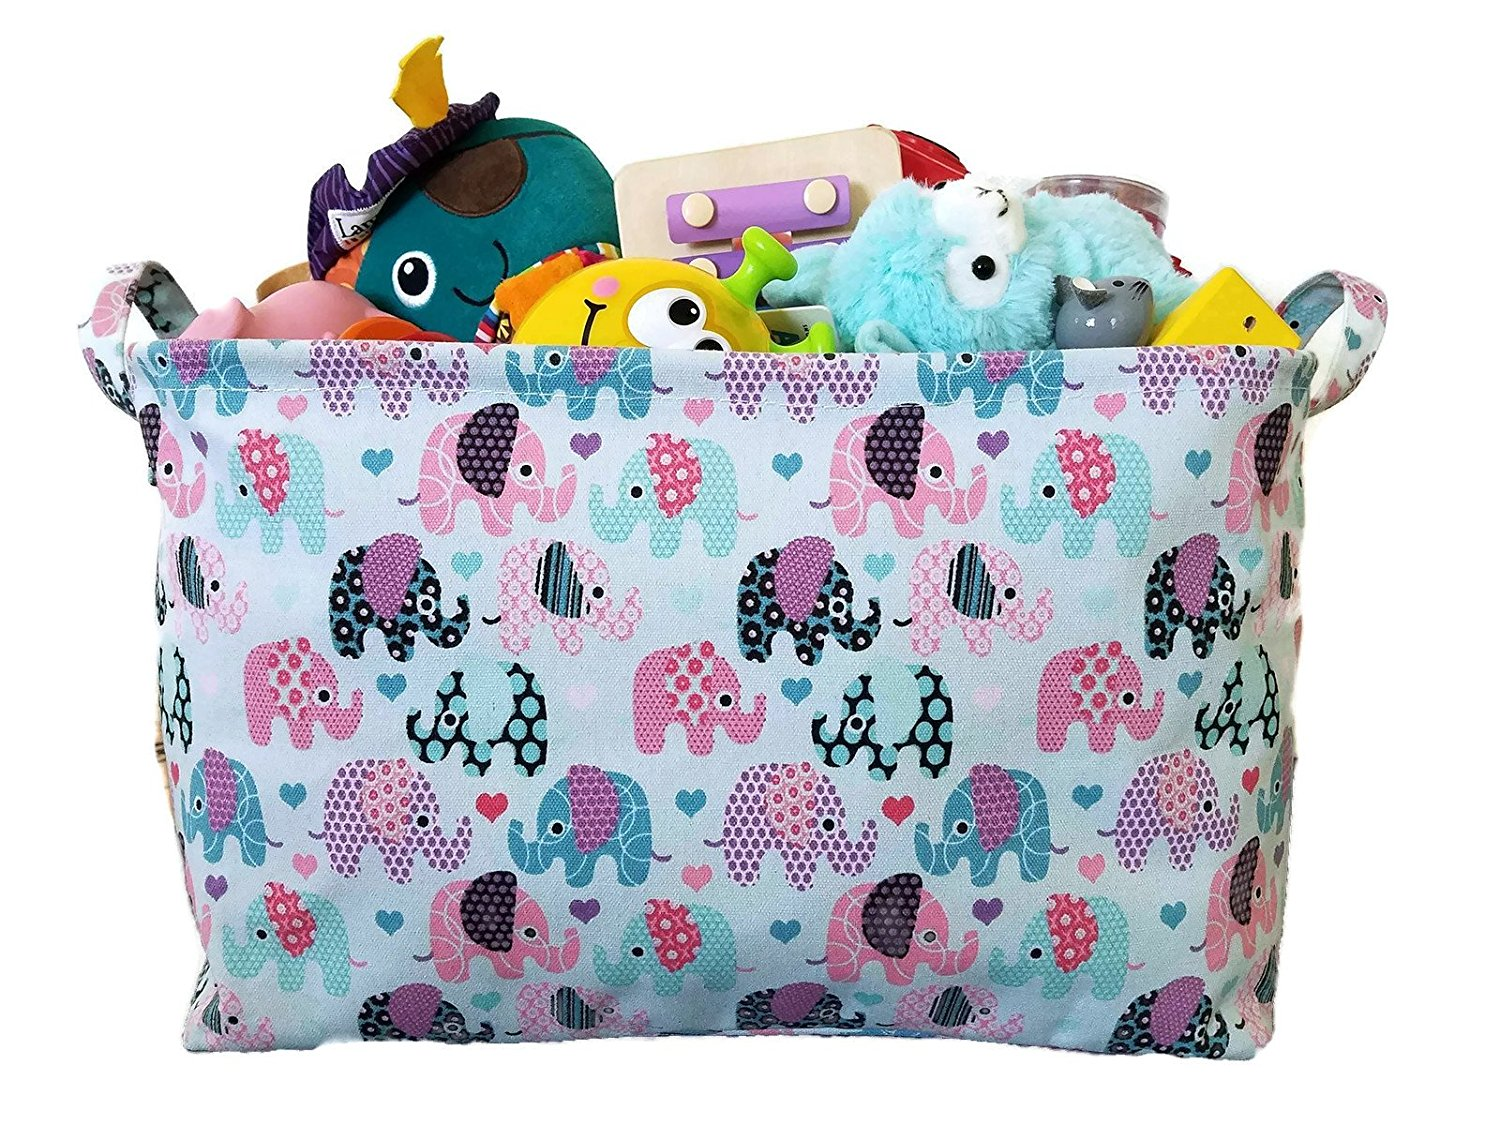 Toy Storage Basket And Canvas Box Organizer With Elephant Prints For Kids  Toys And Nursery Storage